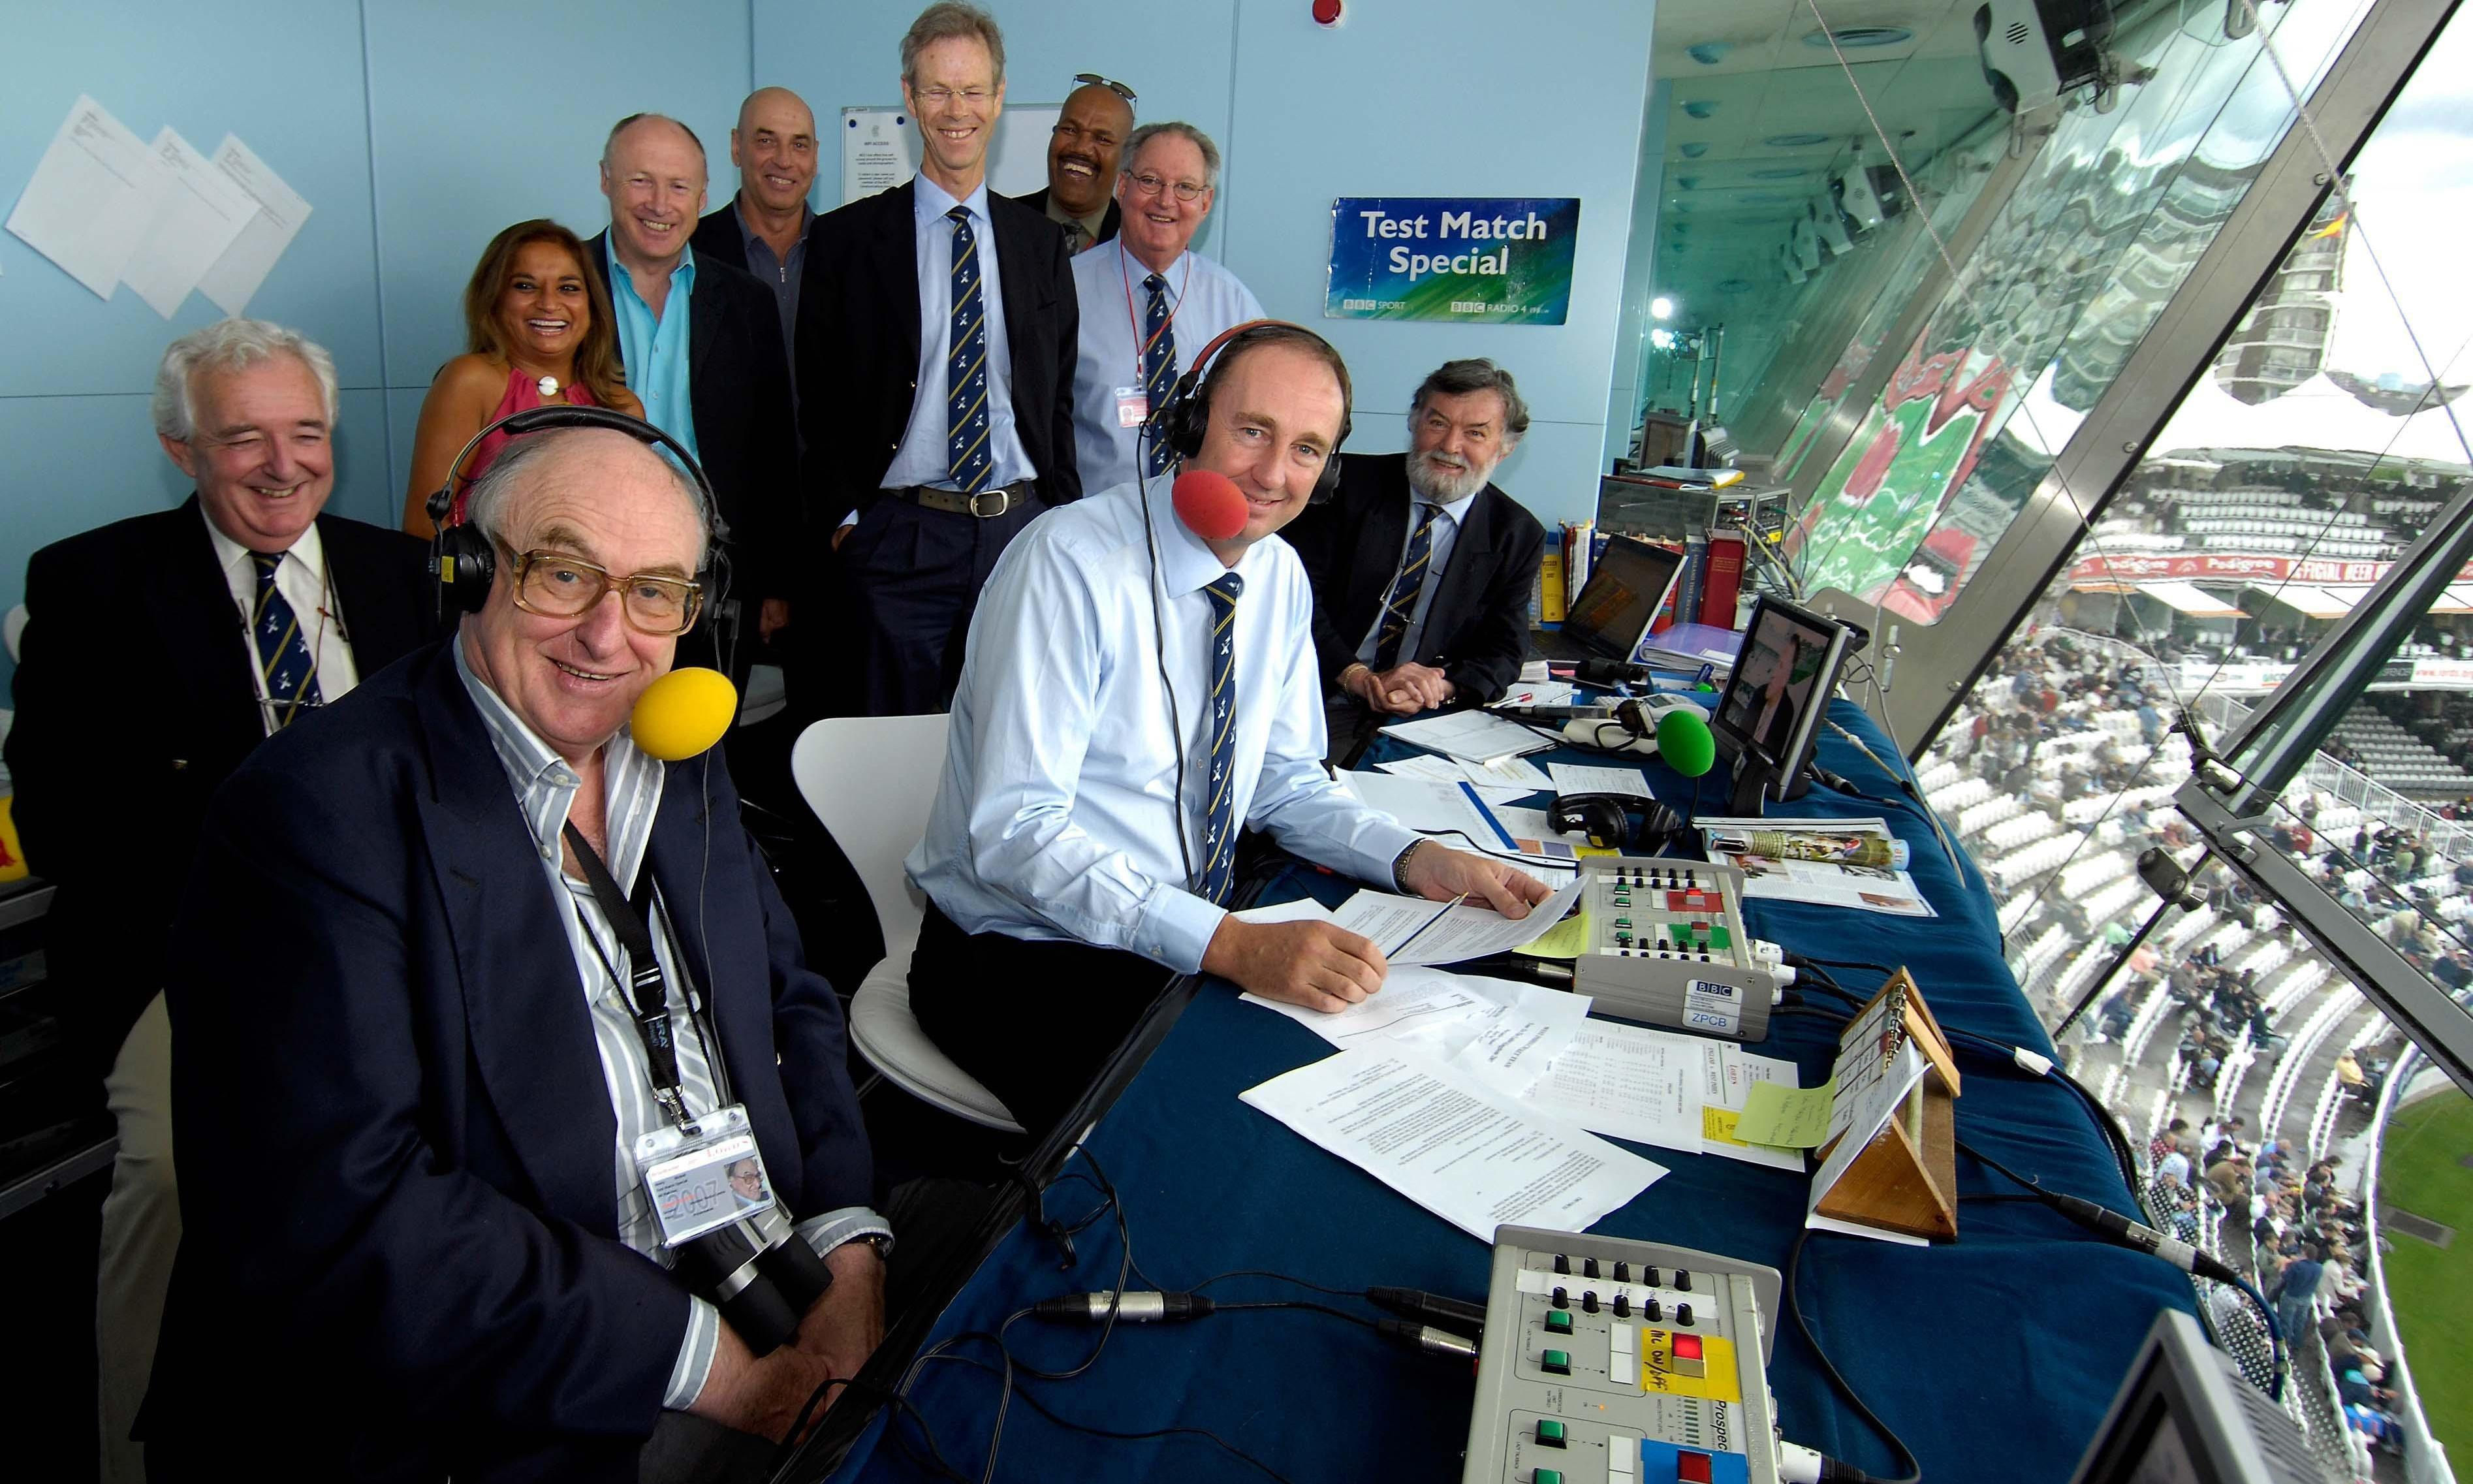 'Surreal' time in the TMS booth that came about by accident